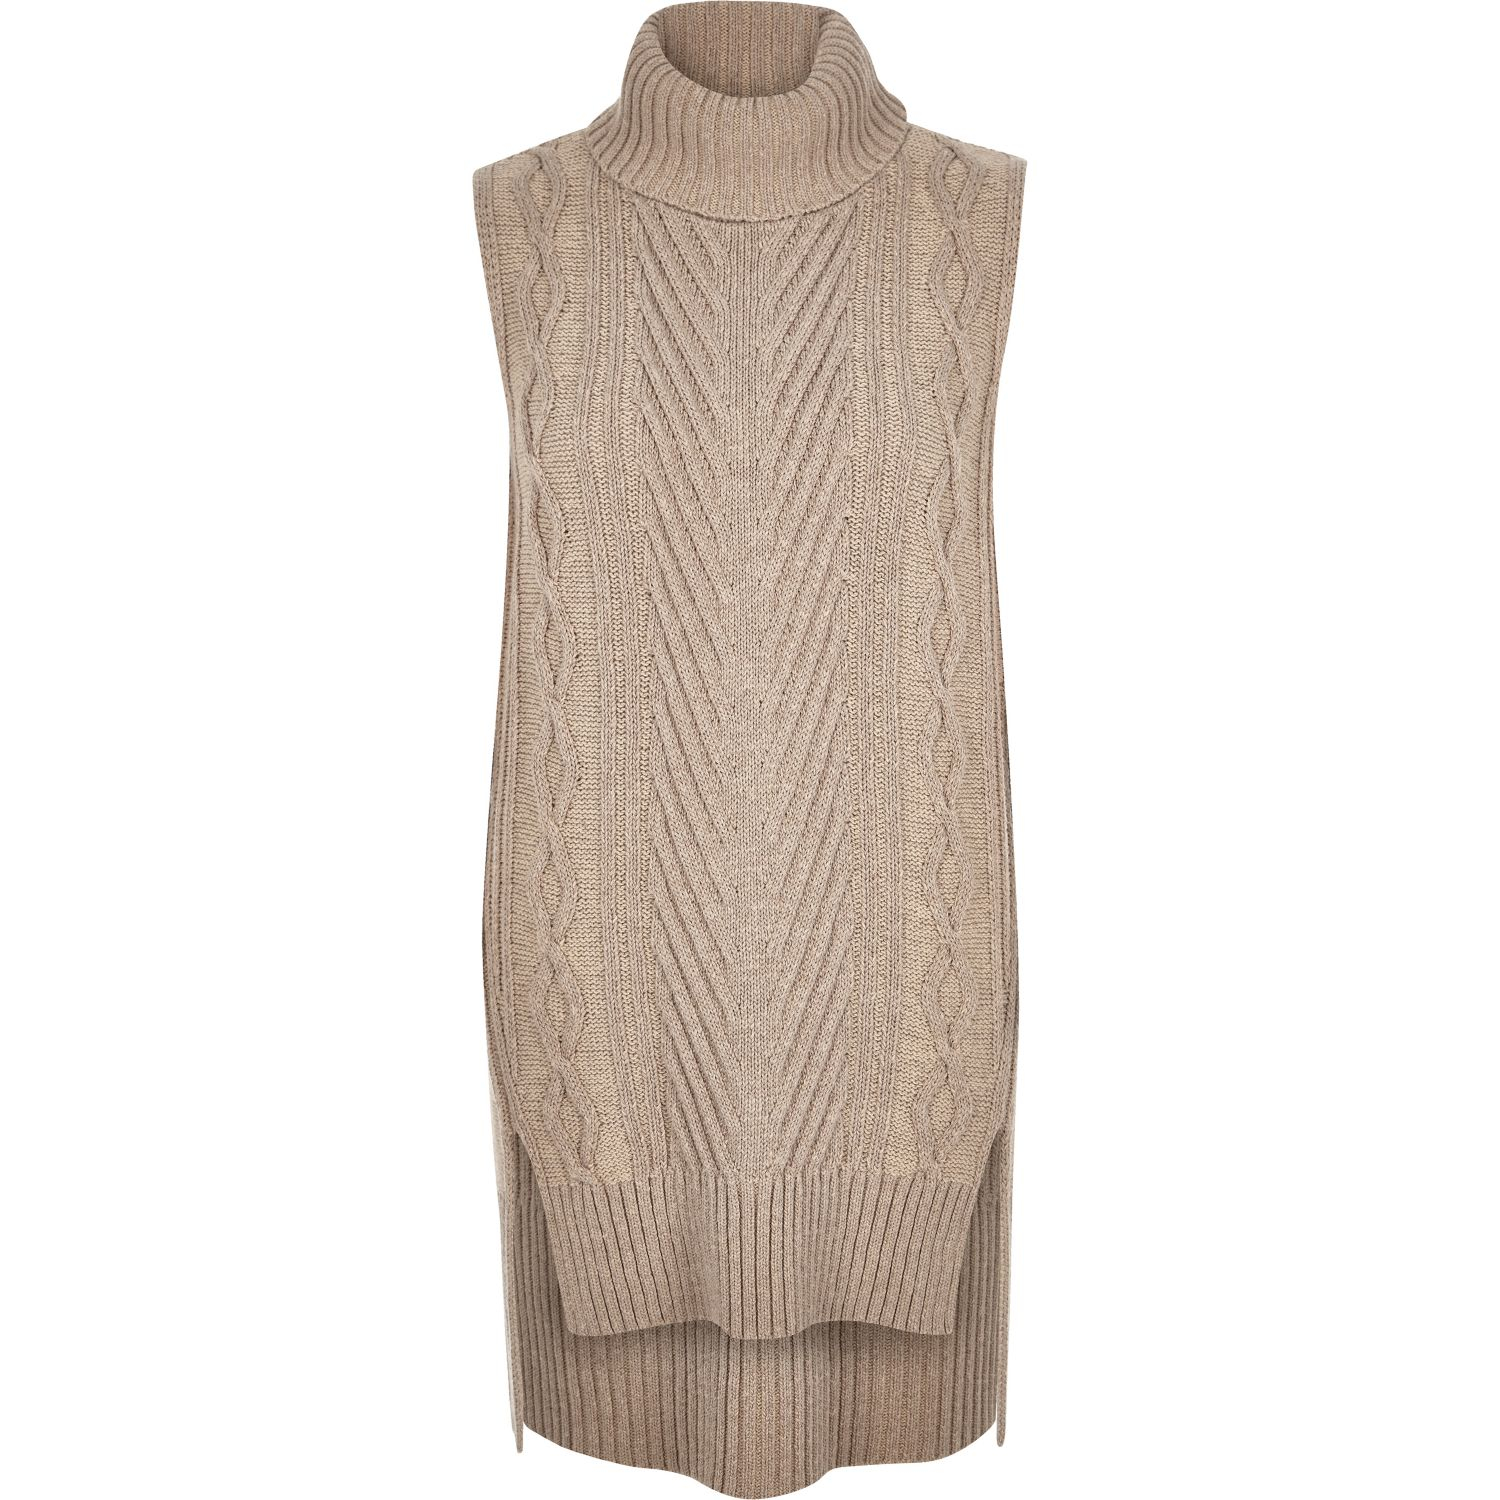 River island Beige Knitted Sleeveless Jumper in Natural Lyst